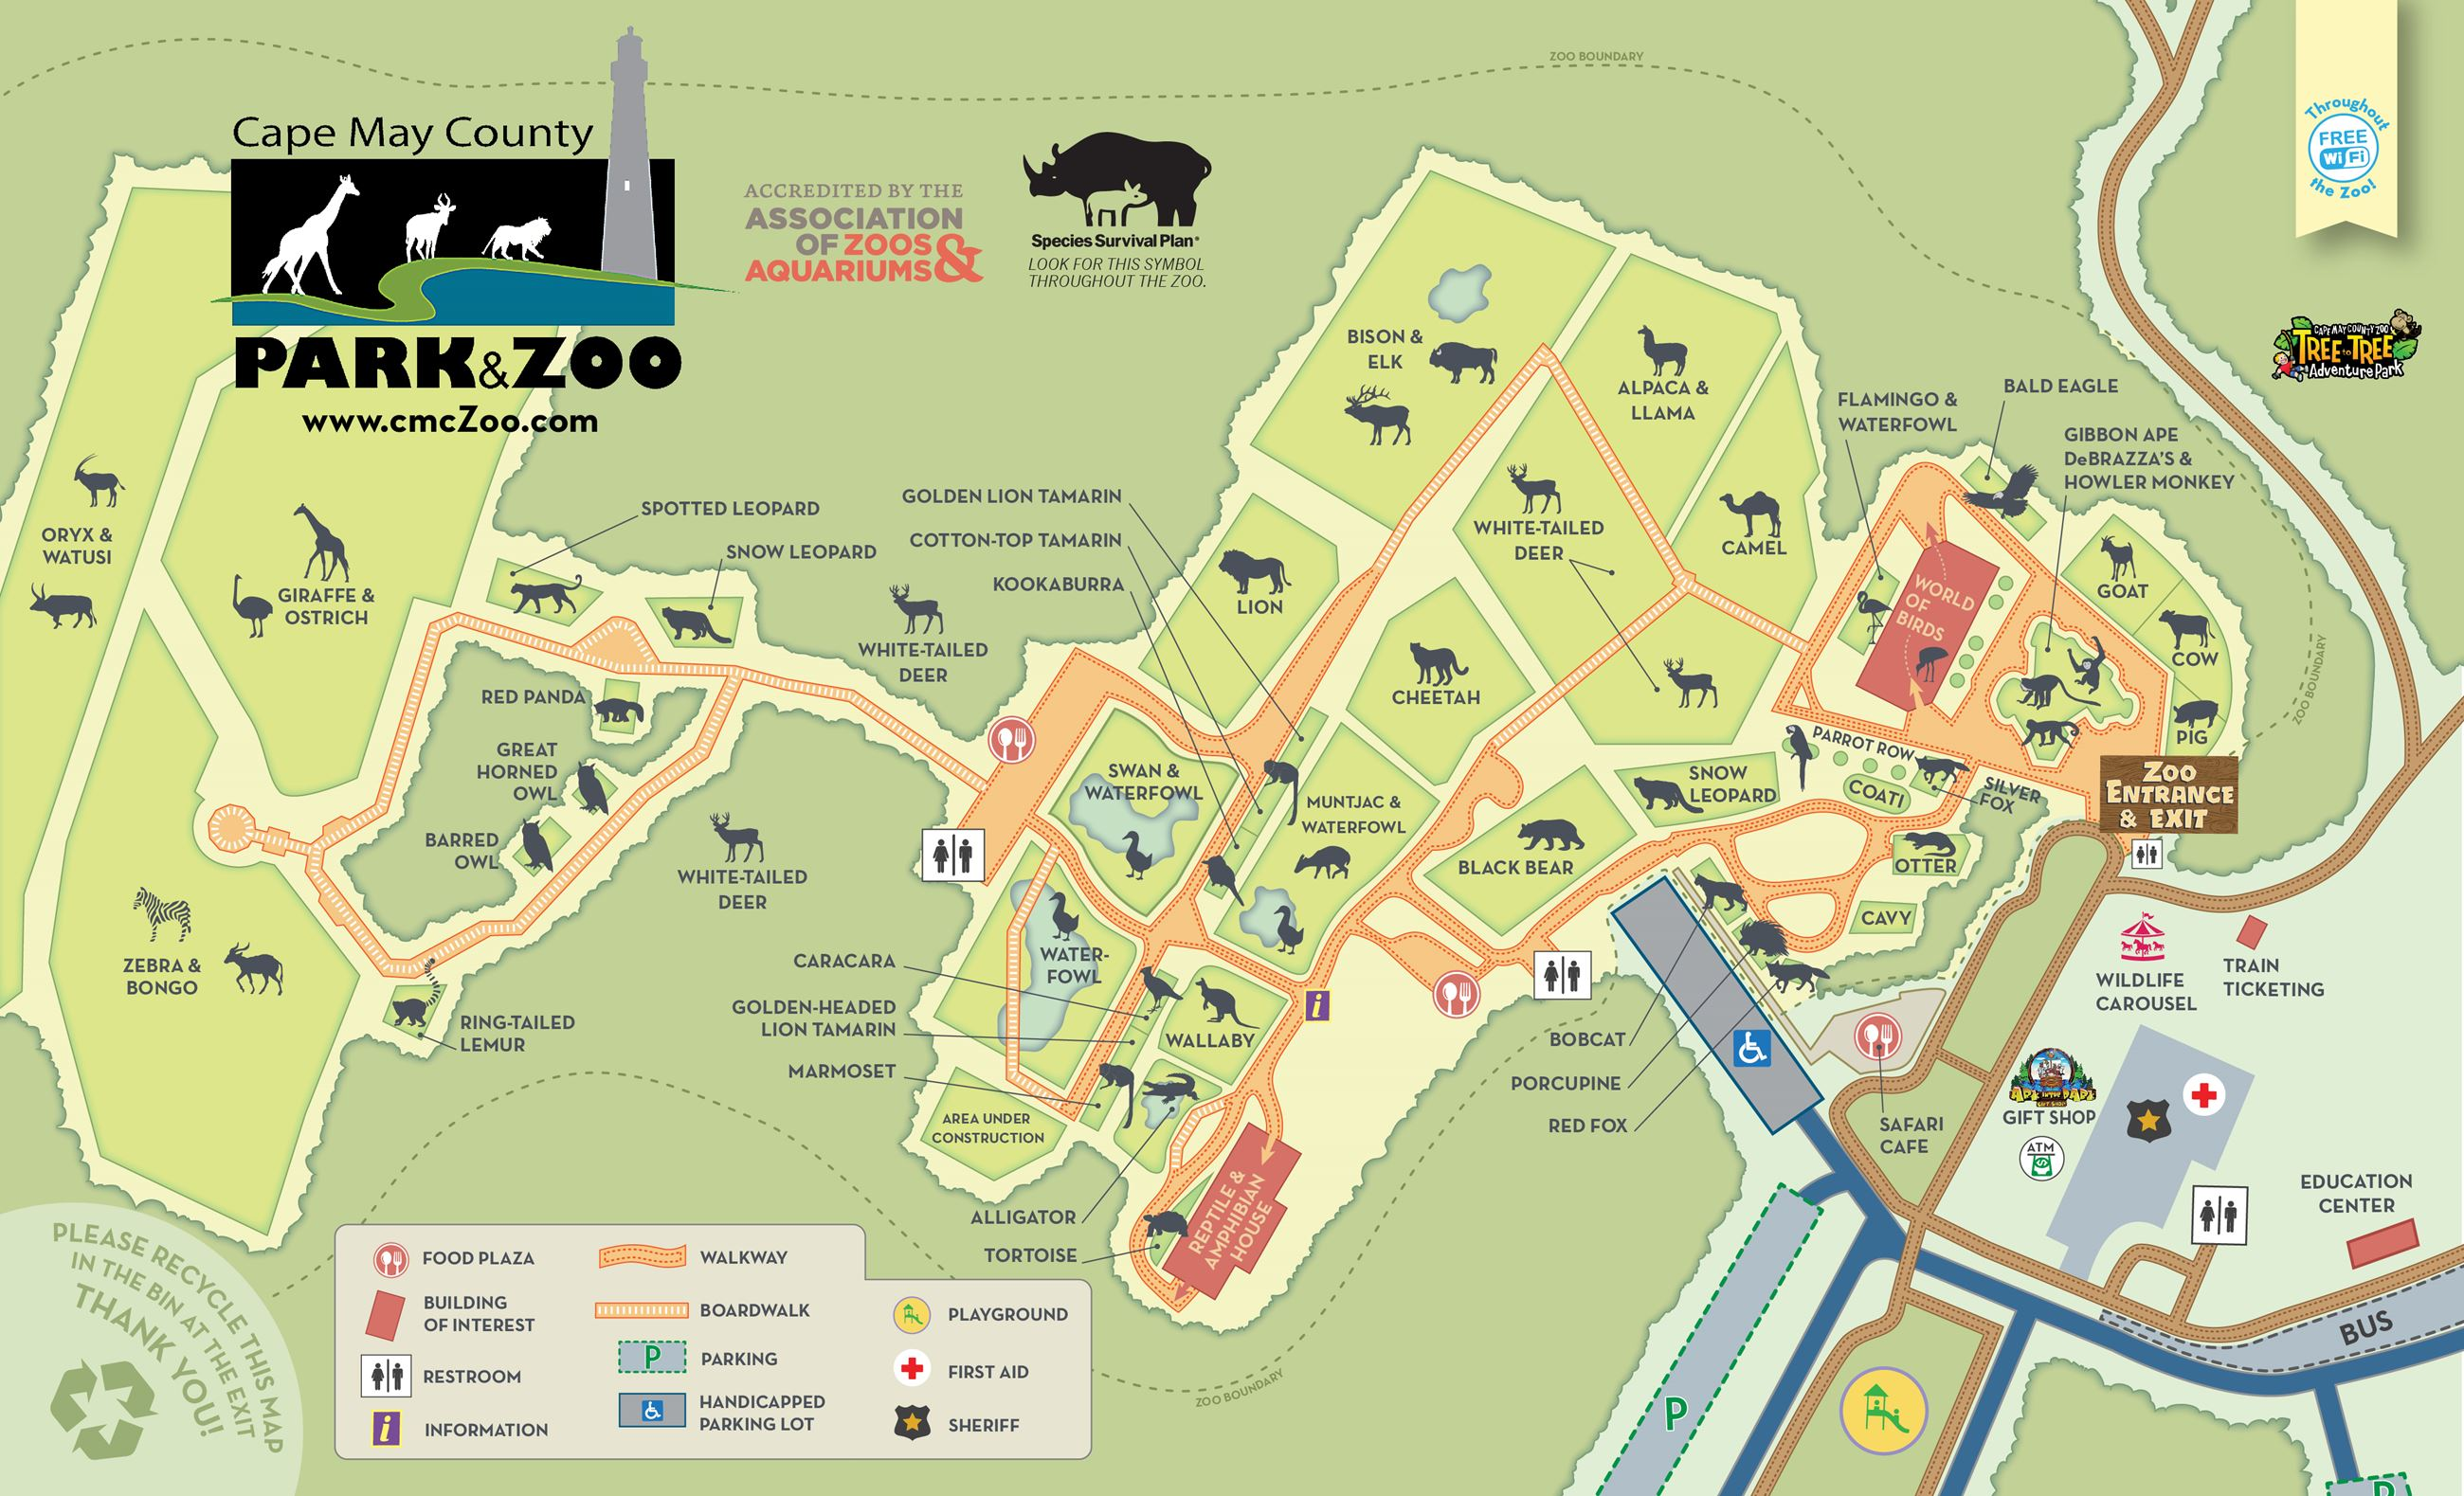 Maps | Cape May County, NJ - Official Website Zoo Map on